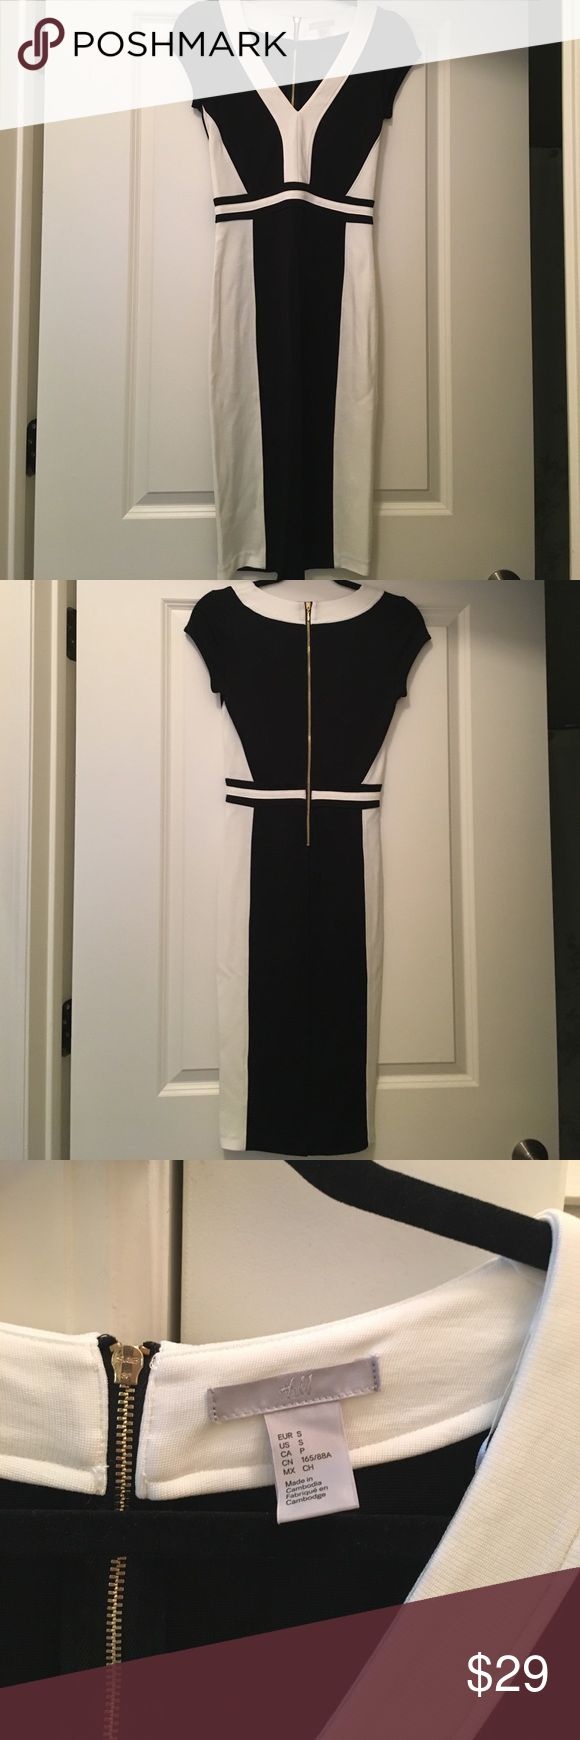 H&M dress Sleek black and white midi length dress, great for work transitioning to going out! Never before worn, but tags removed H&M Dresses Midi